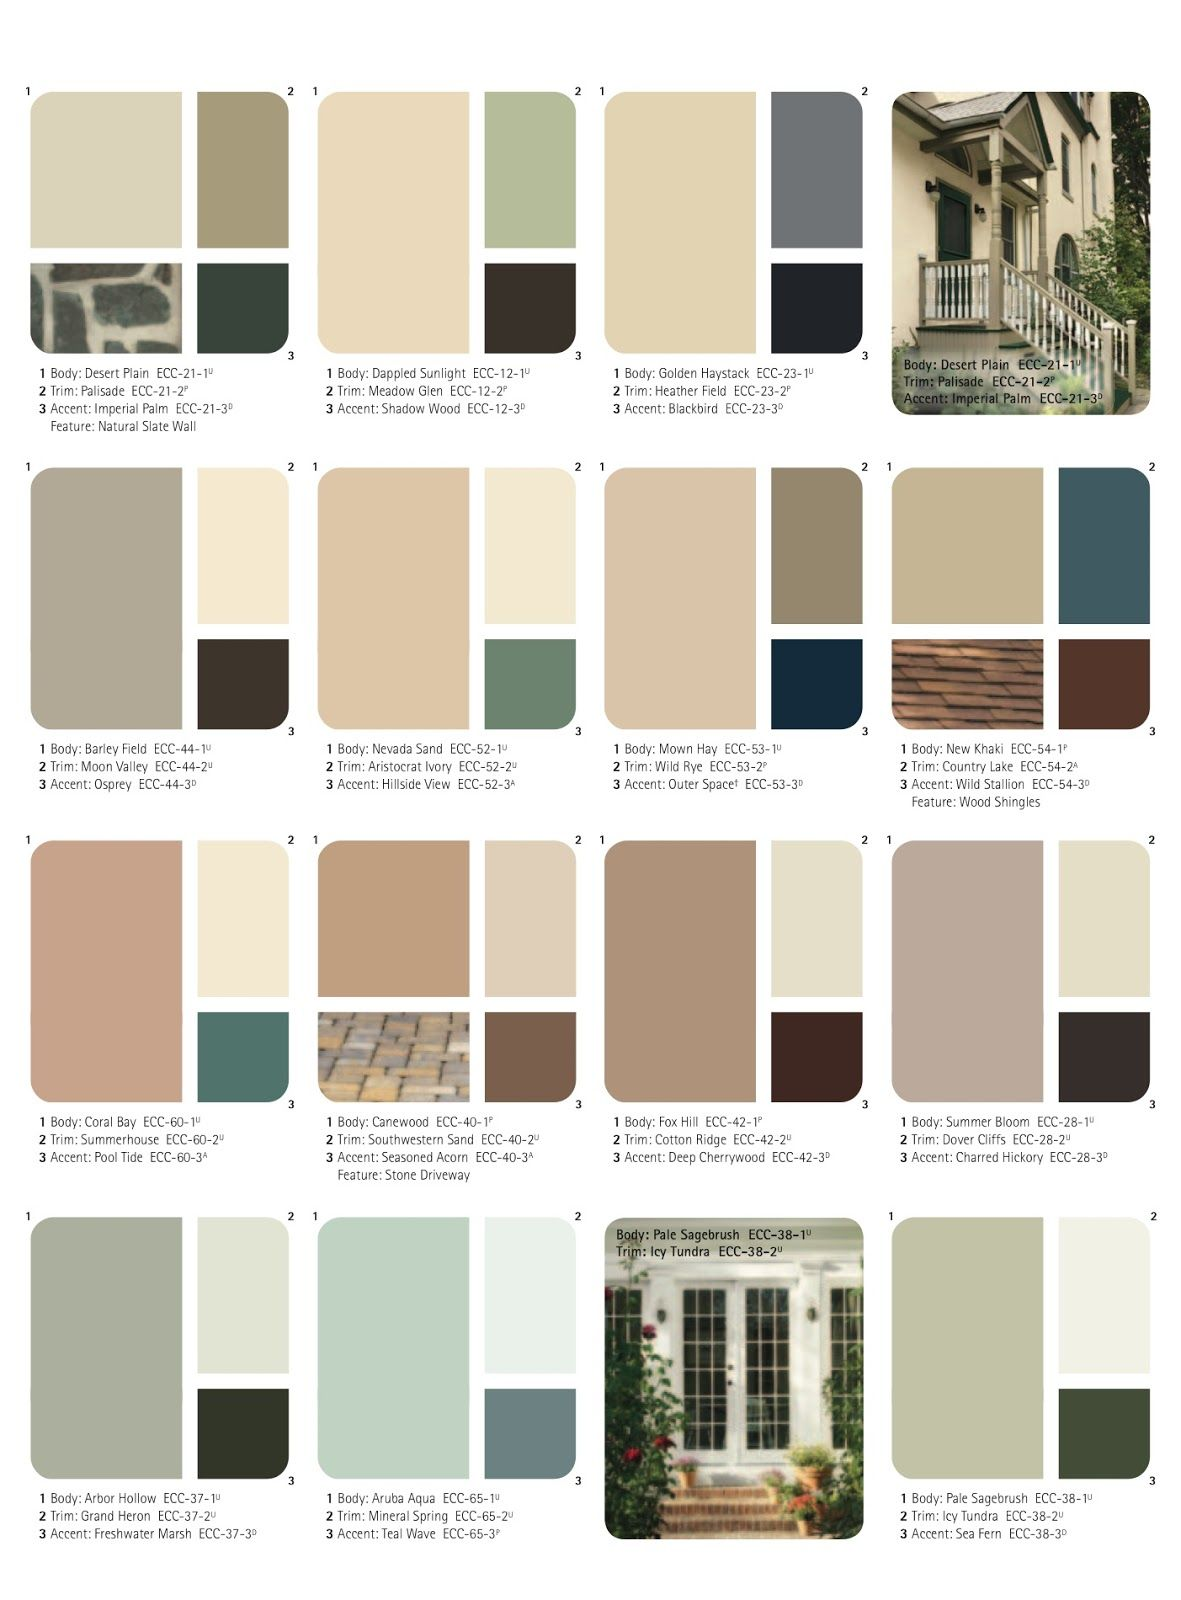 Home Depot Exterior Paint Set Of Beautiful Natural Colors Ange's Dollhouse Choosing The .